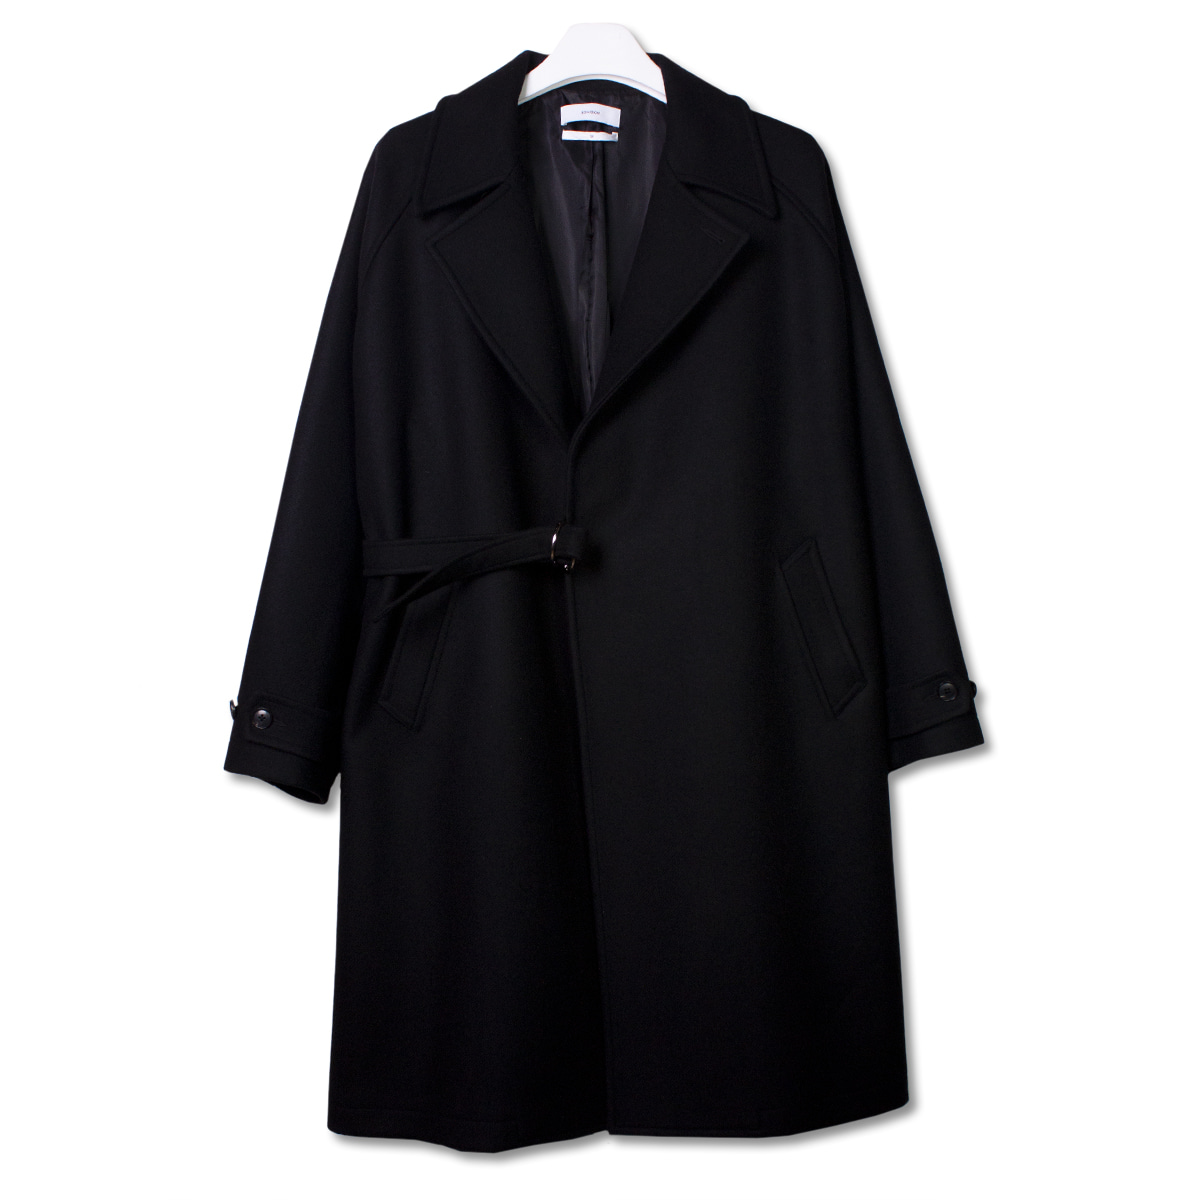 [8DIVISION] TIELOCKEN COAT 'BLACK'